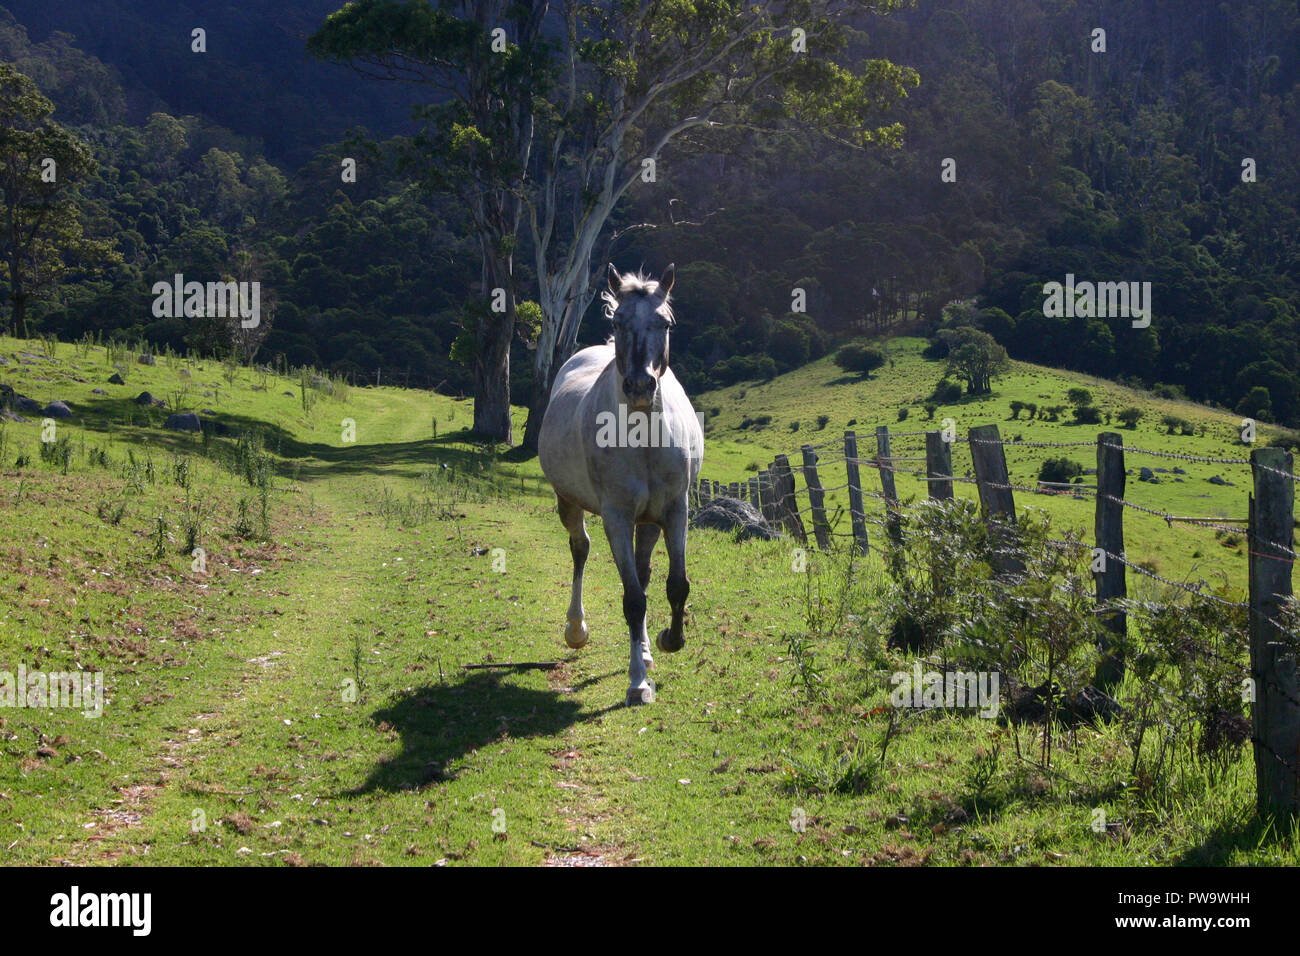 WHITE HORSE RUNNING THROUGH A RURAL PROPERTY IN QUEENSLAND, AUSTRALIA - Stock Image